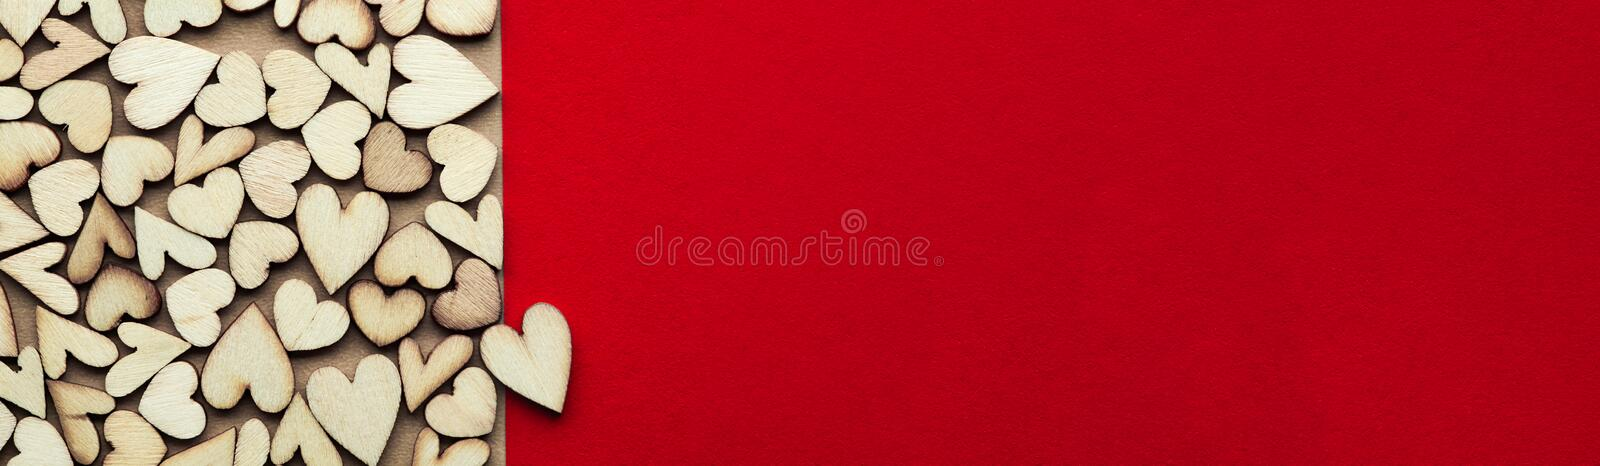 Romantic background of dozens of tiny wooden hearts with a single heart on a red card. For love, romance, or Valentine`s Day. With blank space for text royalty free stock photo